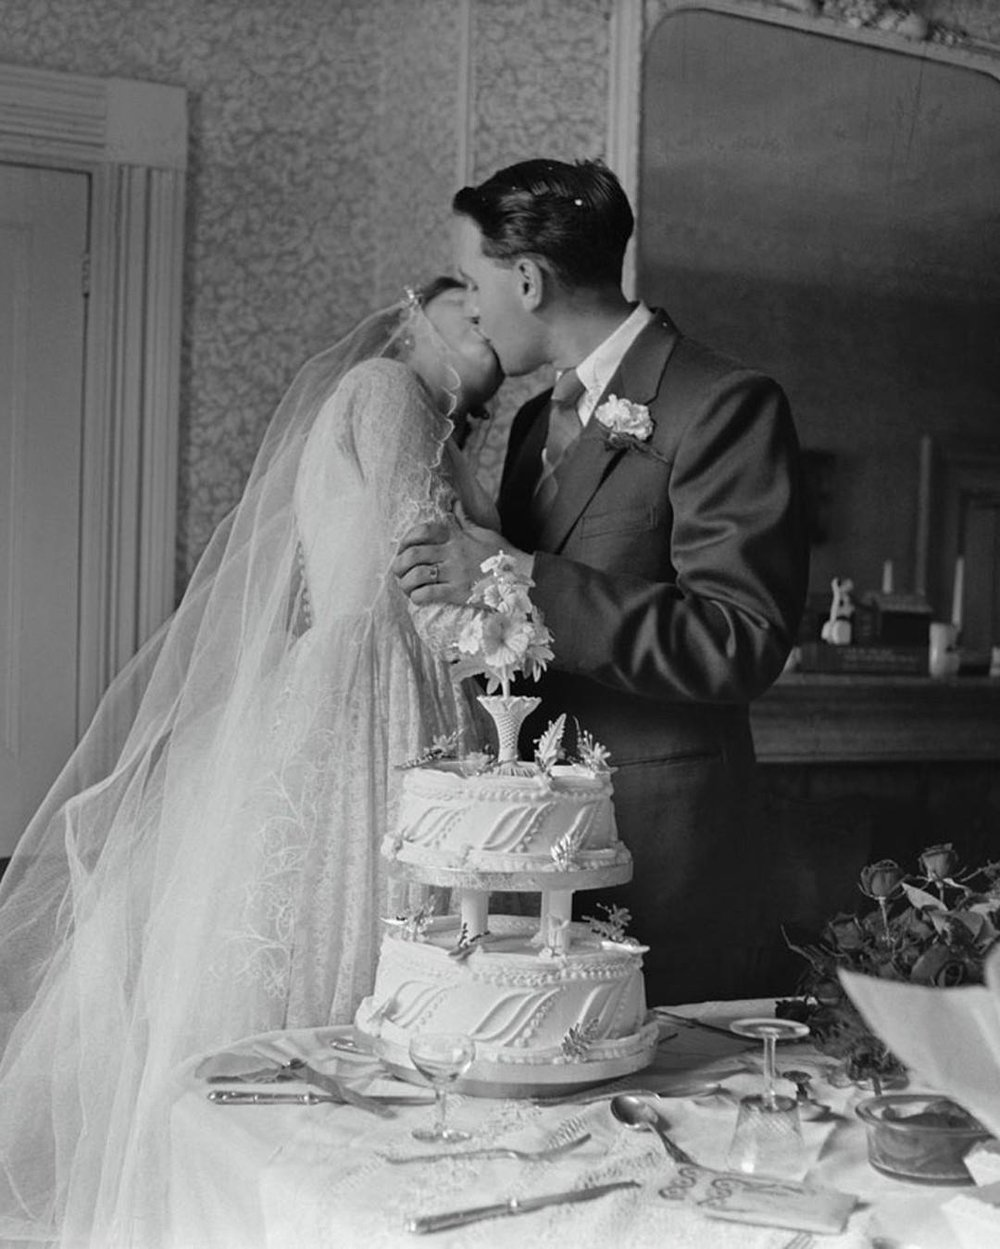 Vintage image of couple kissing by wedding cake